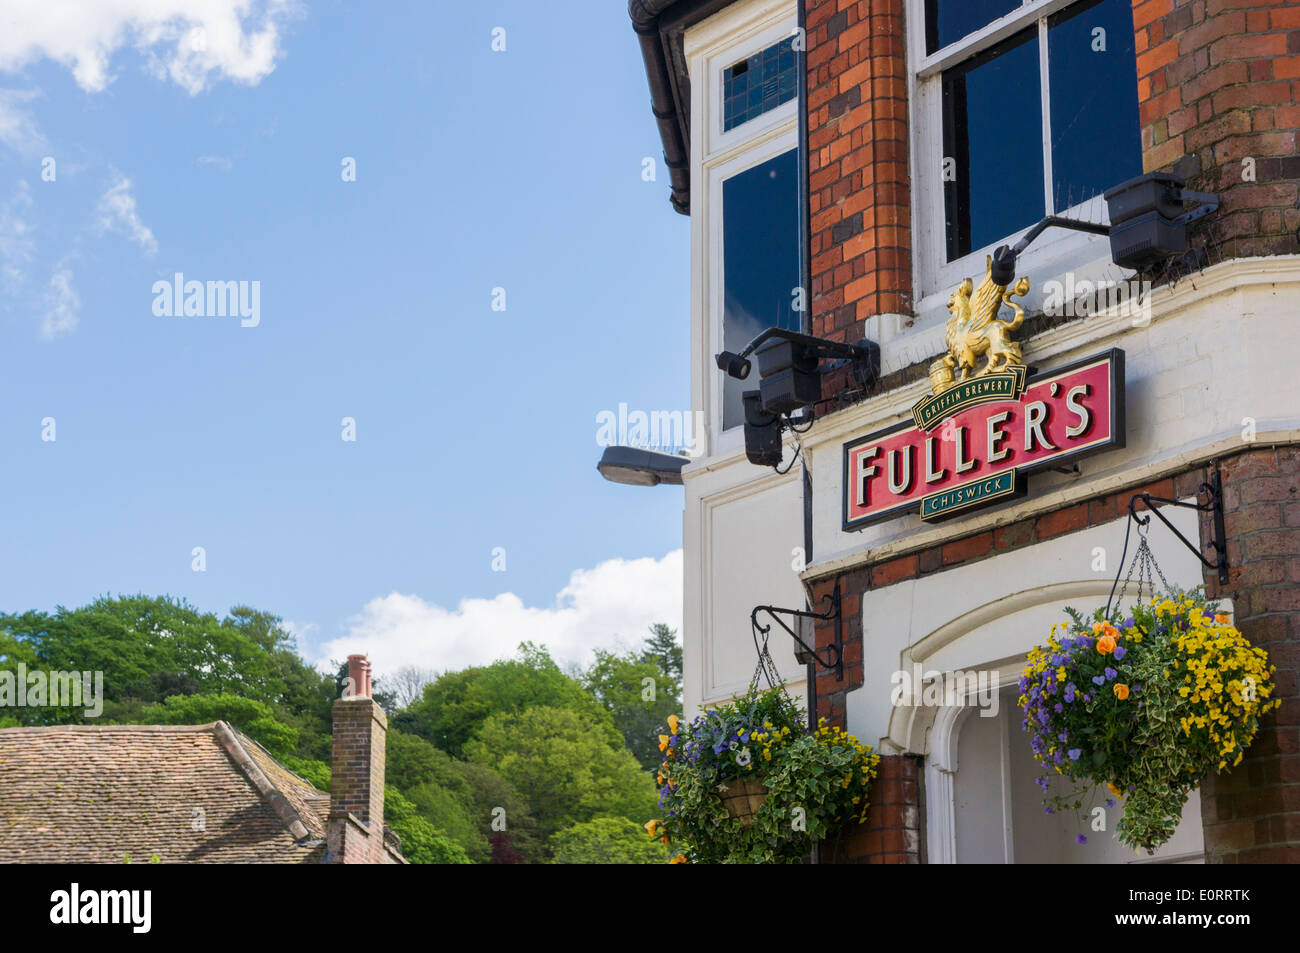 Fullers brewery logo on a pub, England, UK - Stock Image